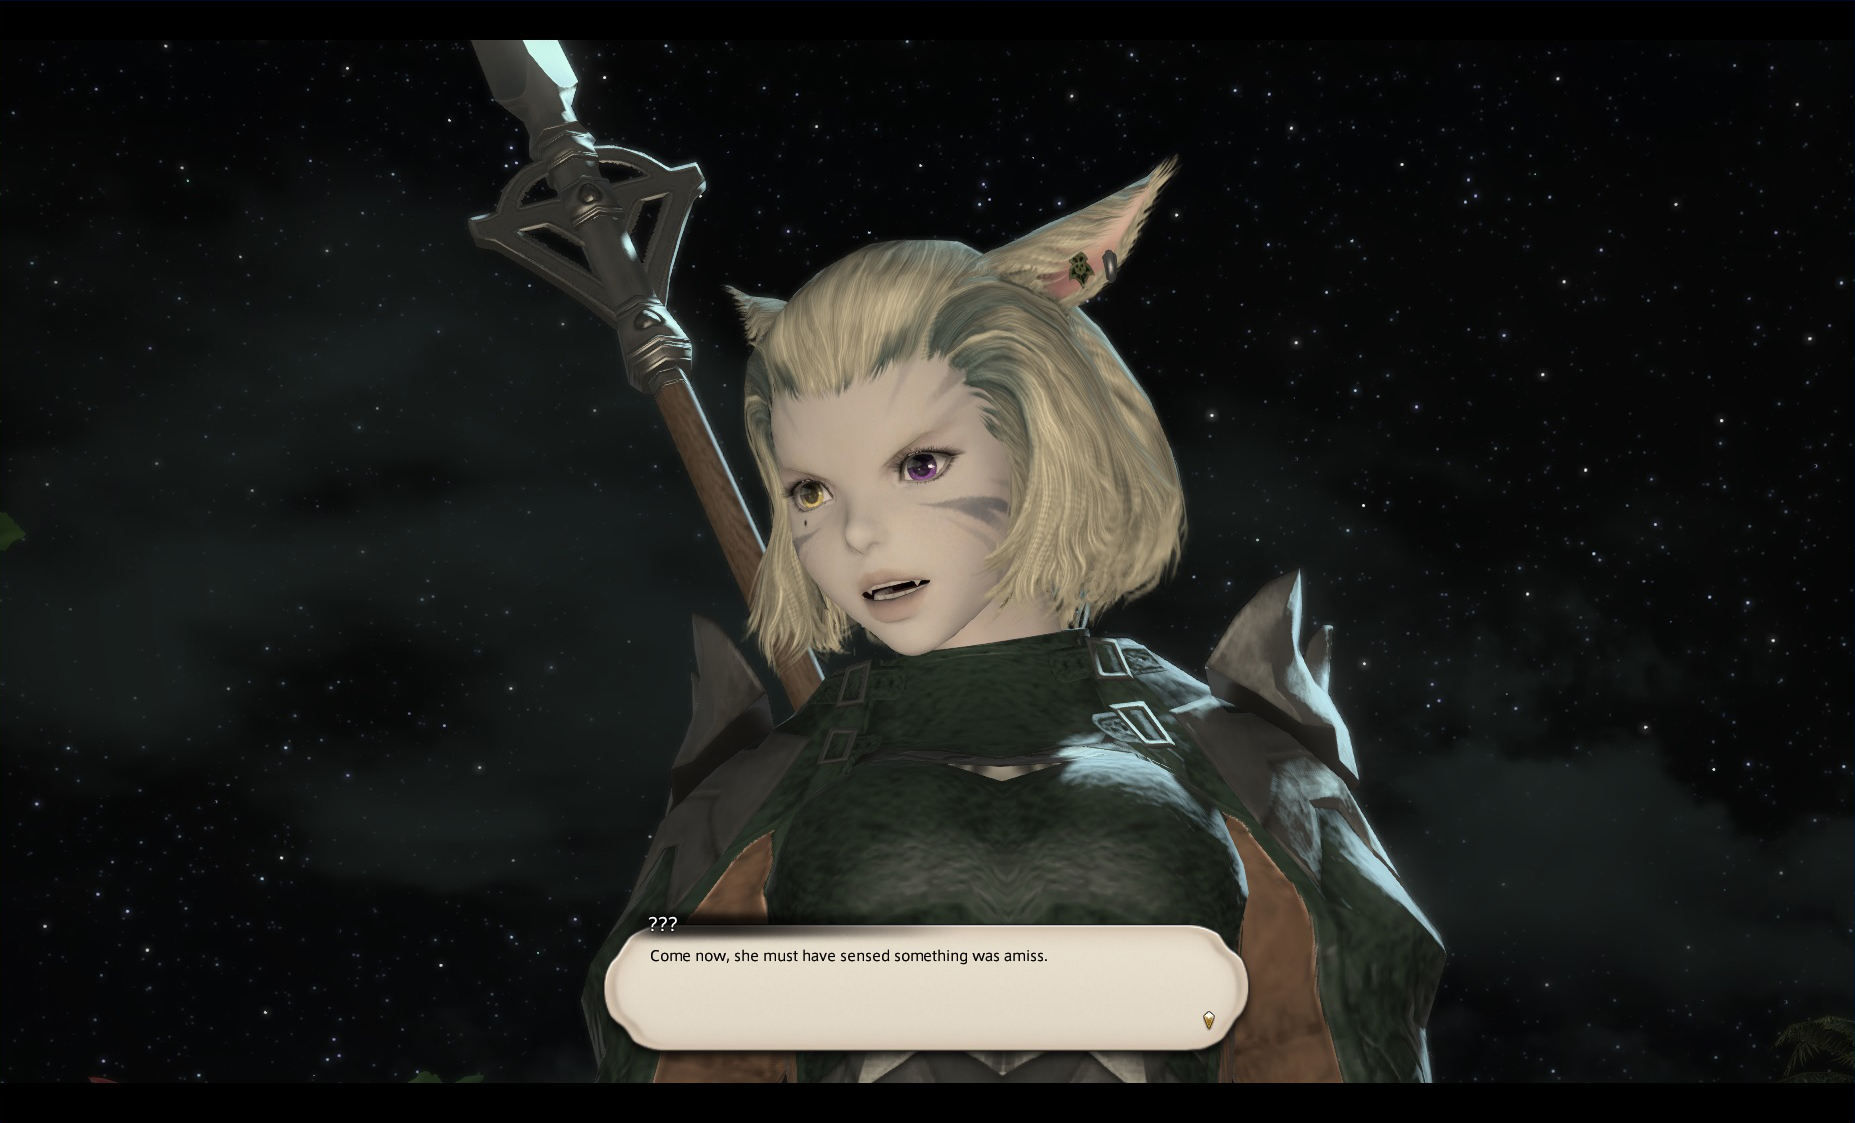 Final Fantasy Xiv A Realm Reborn Review